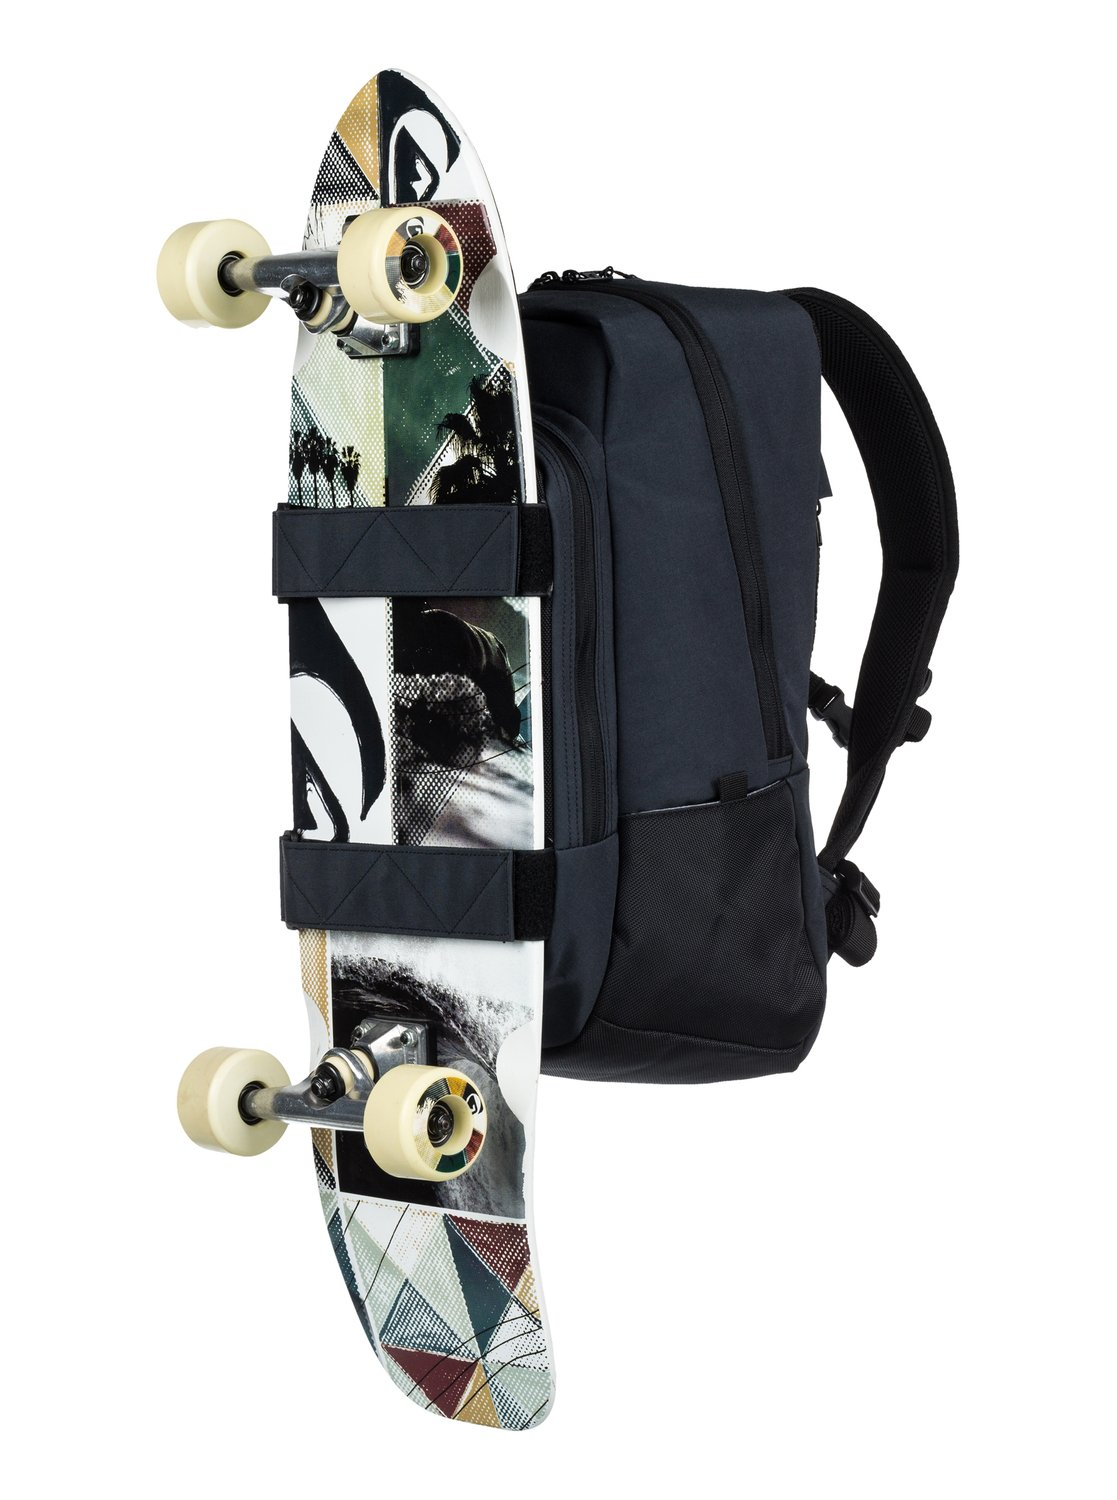 skate sac dos de skate eqybp03335 quiksilver. Black Bedroom Furniture Sets. Home Design Ideas